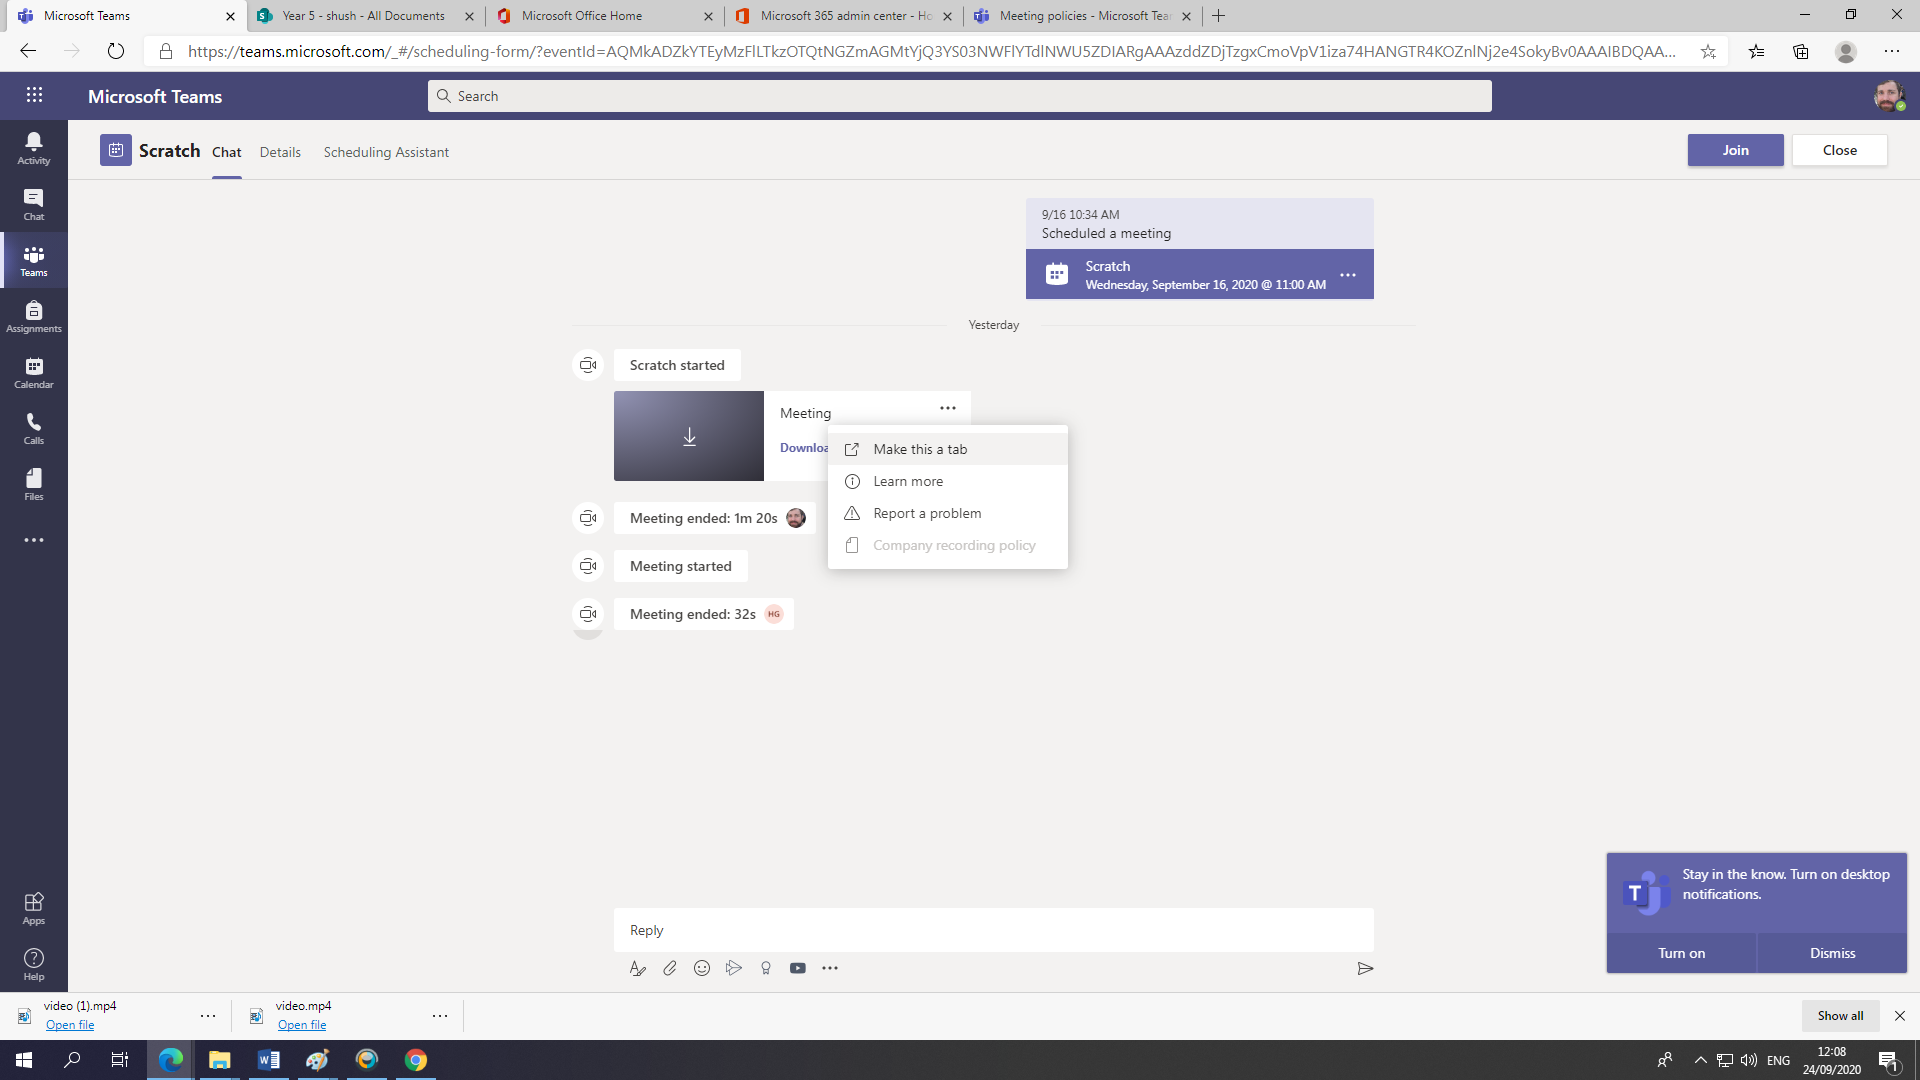 Cannot delete meeting recording in Microsoft Teams - Microsoft